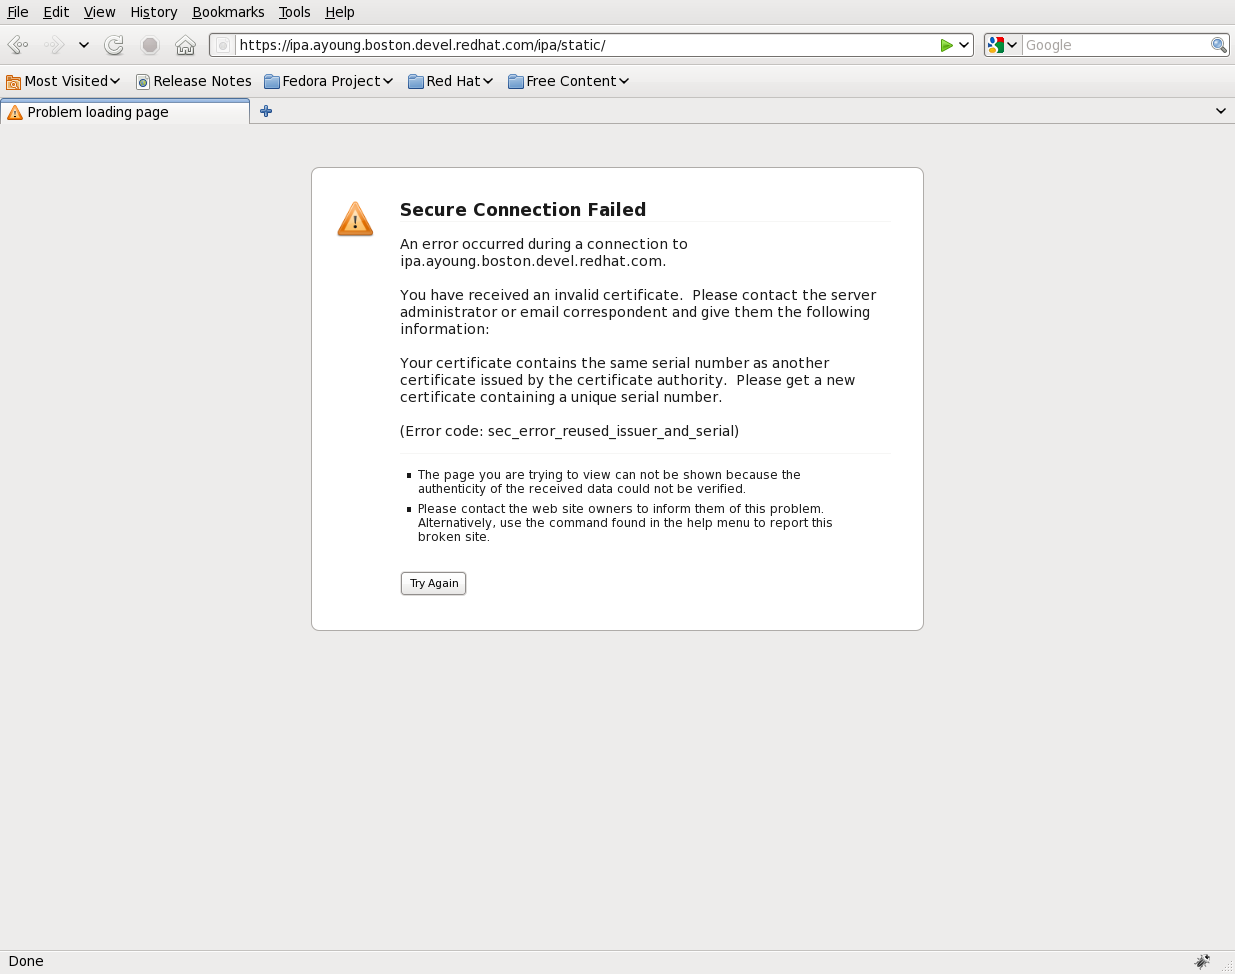 Troubleshooting Freeipa Certificate Issues Adam Youngs Web Log